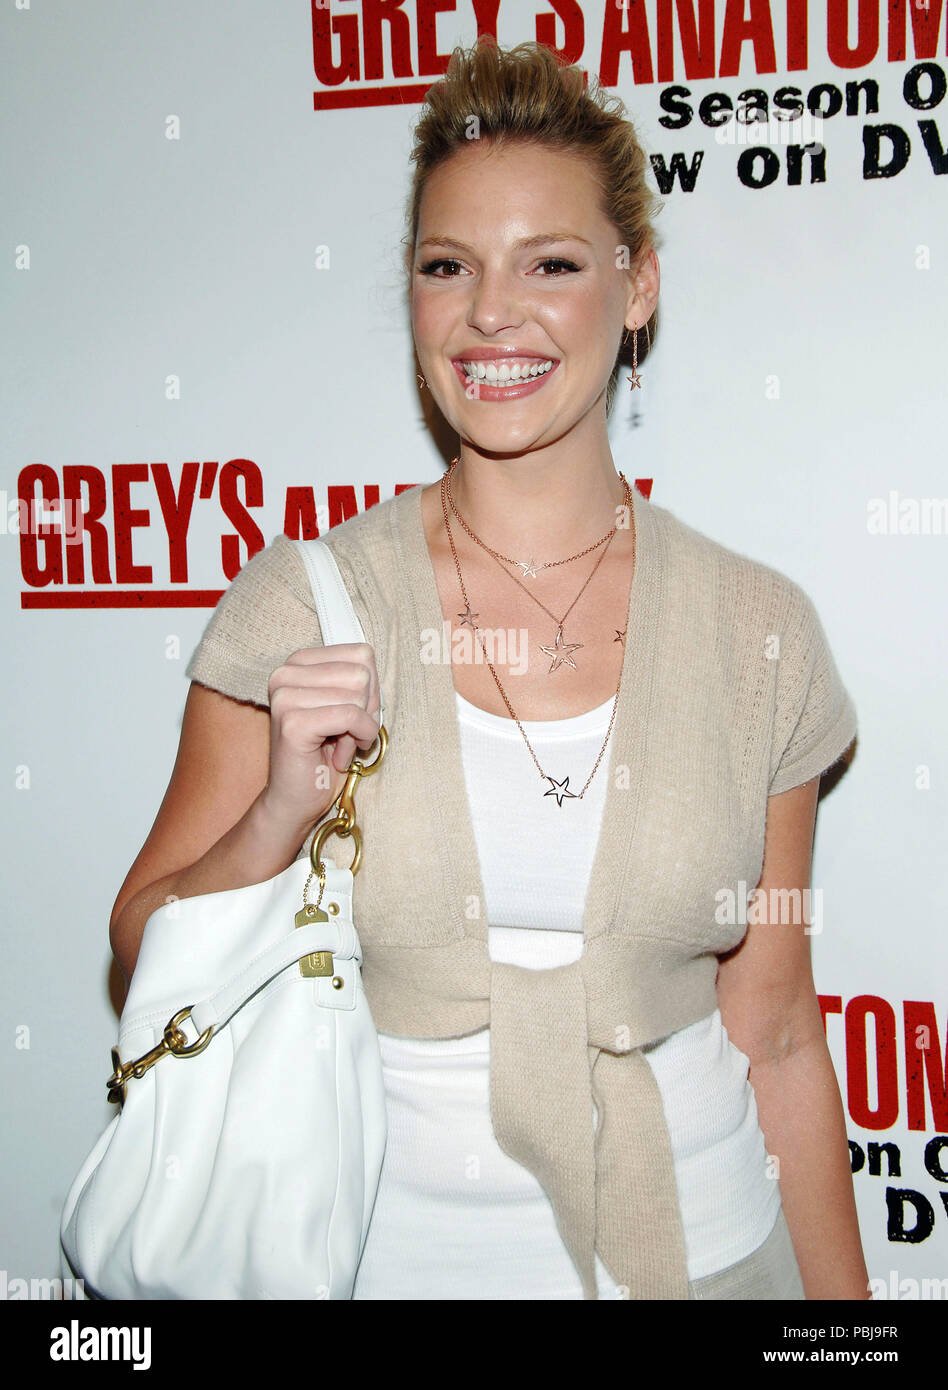 Katherine Heigl Greys Anatomy Stock Photos & Katherine Heigl Greys ...